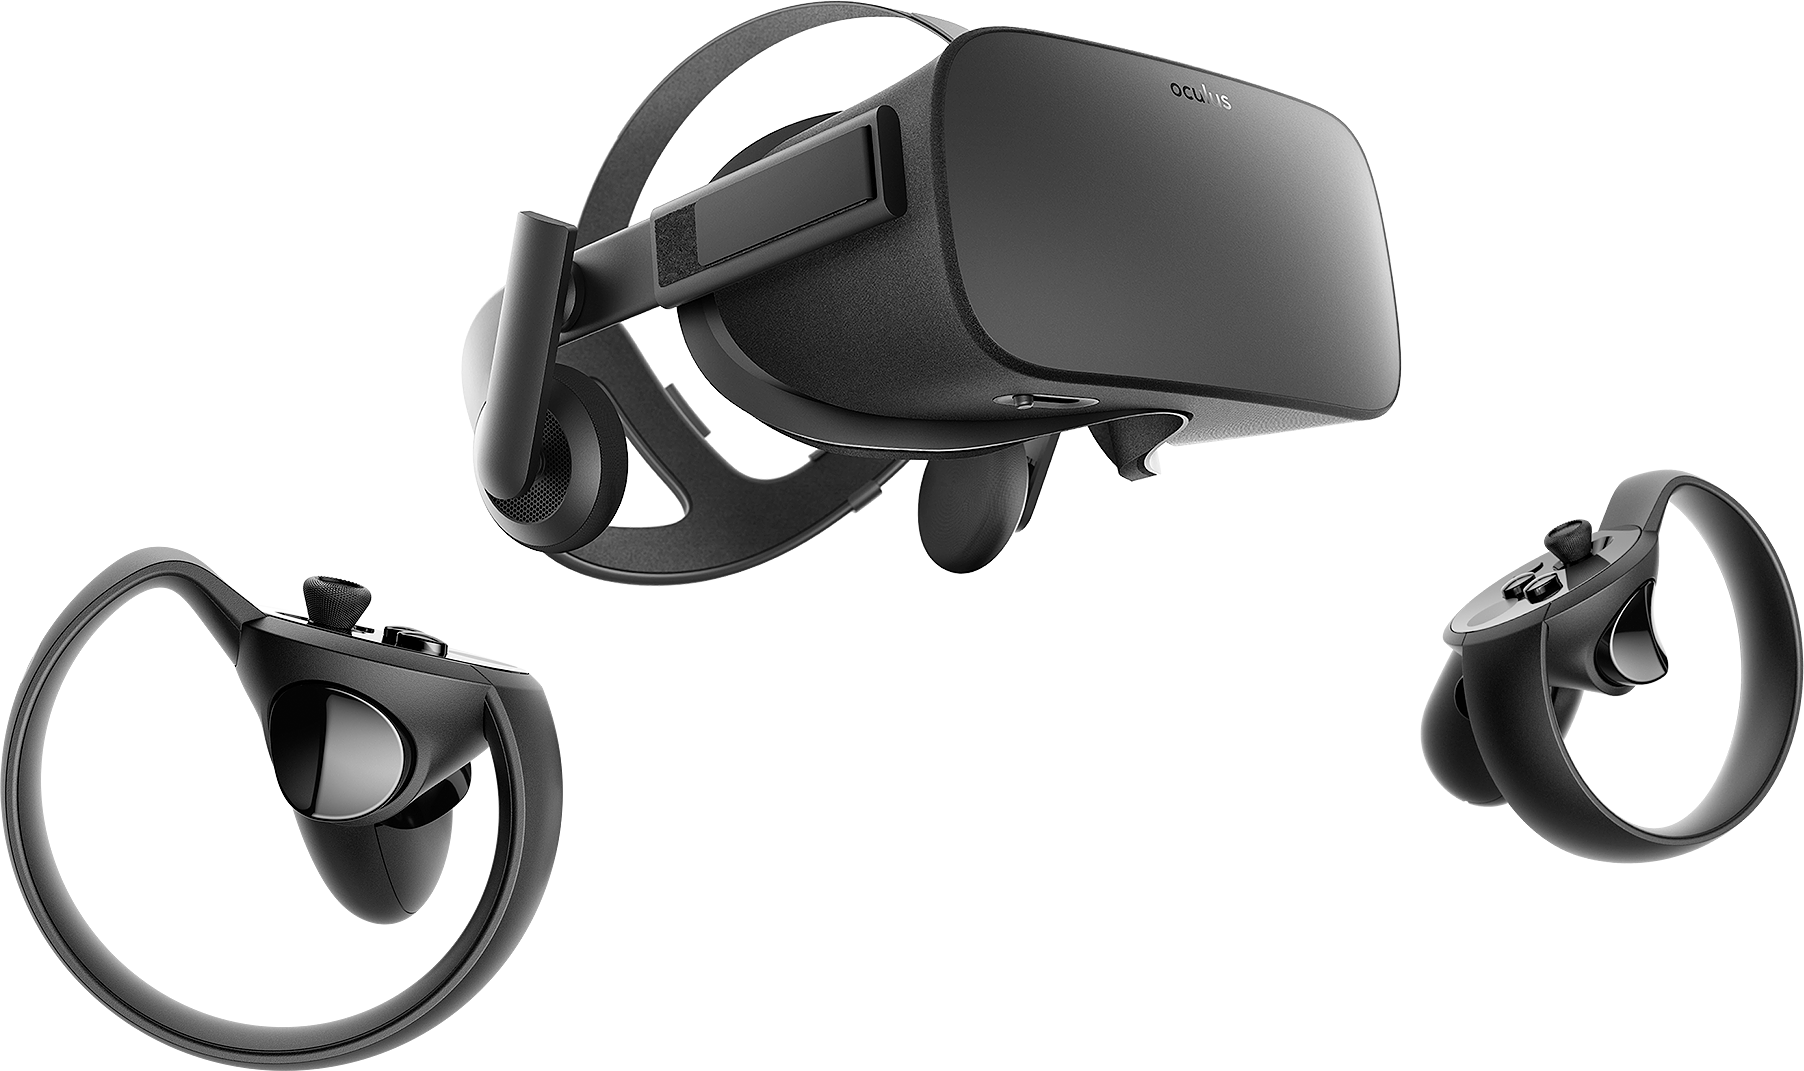 Oculus Rift Virtual reality headset HTC Vive Oculus VR.